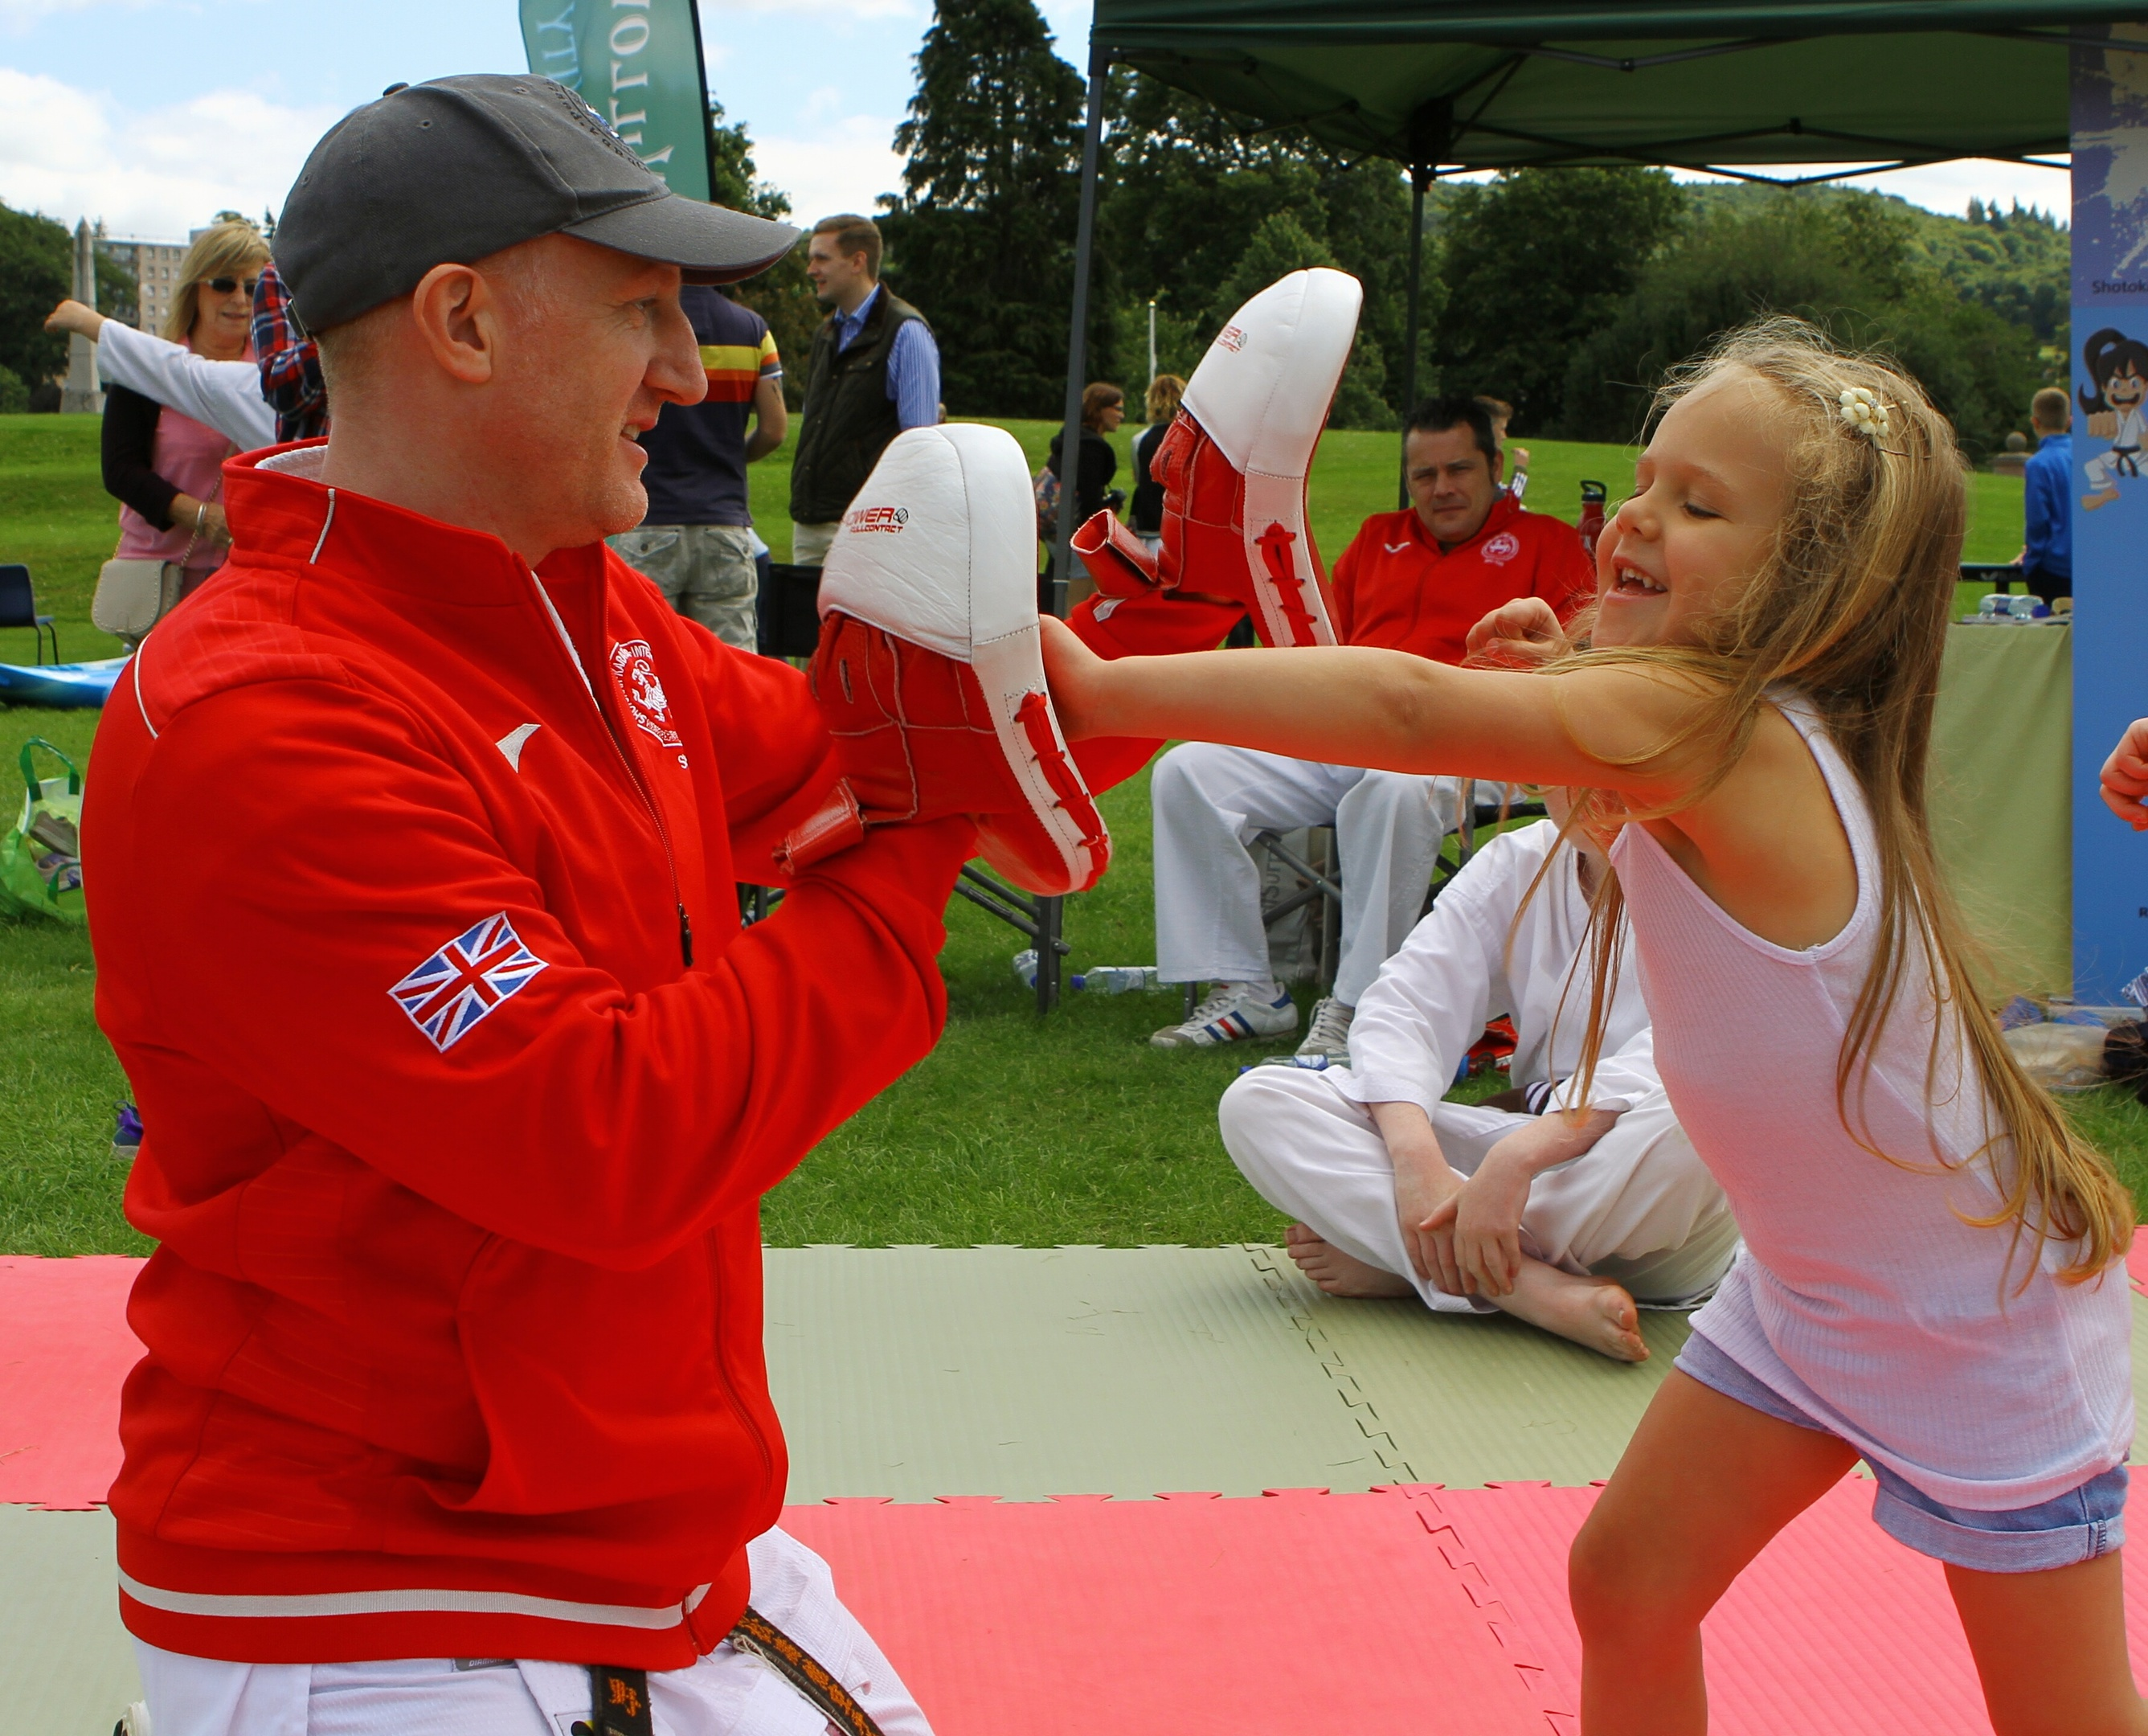 Lilly Keenan, age 5, trying out the boxing on the Perth Shotokan Karate Academy, with instructor Mark Lewis, at the ActiviTAY event, at the North Inch in Perth.